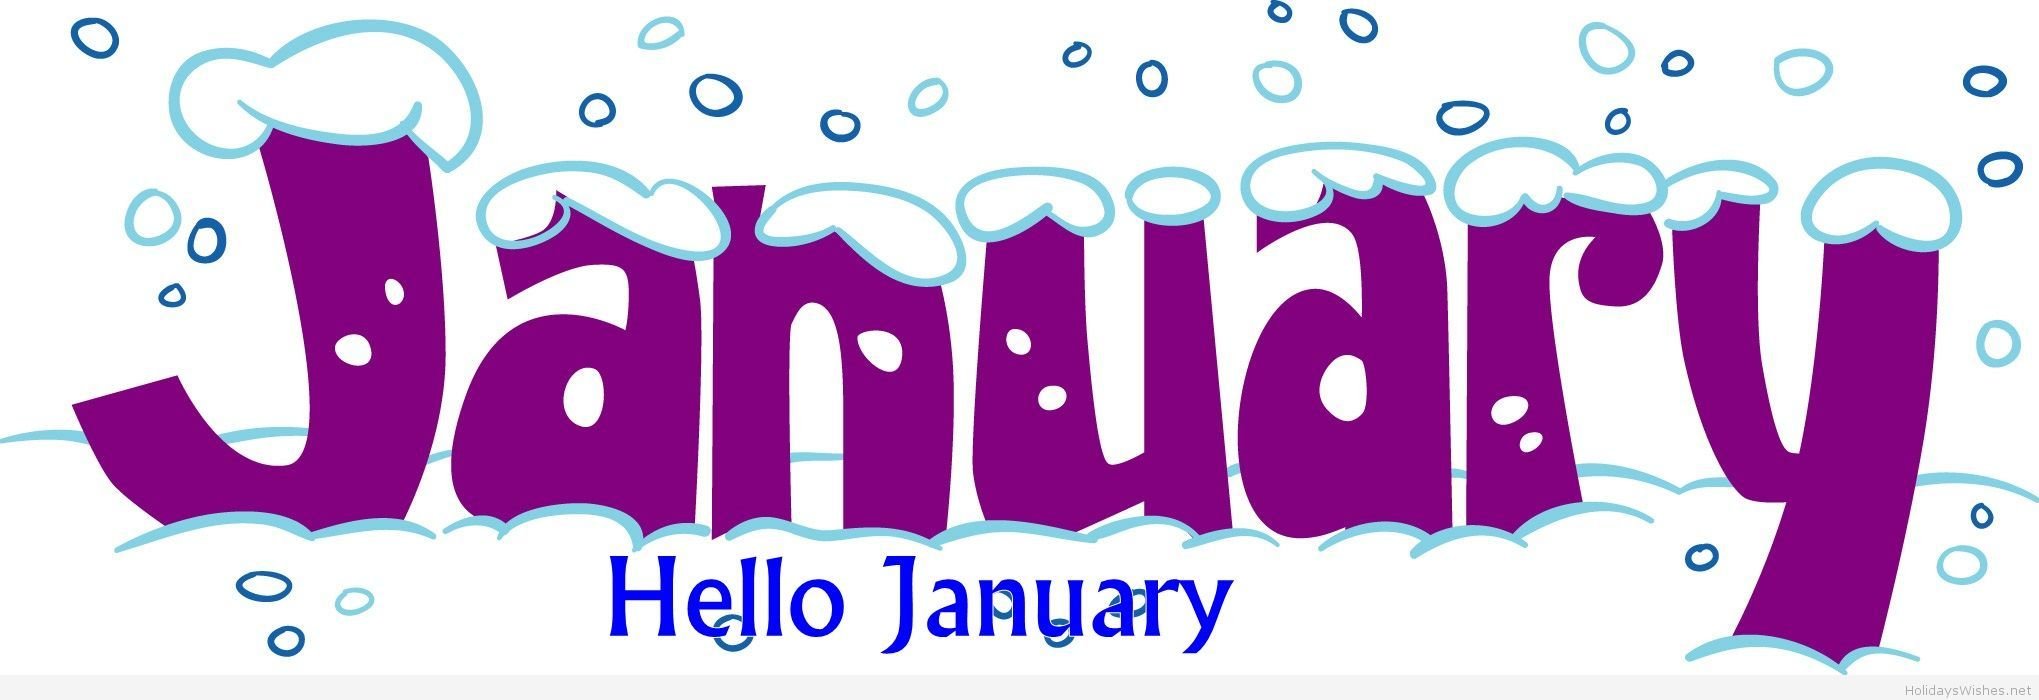 january birthday clipart ; d229c1c2d536e9ce9a24973378381648